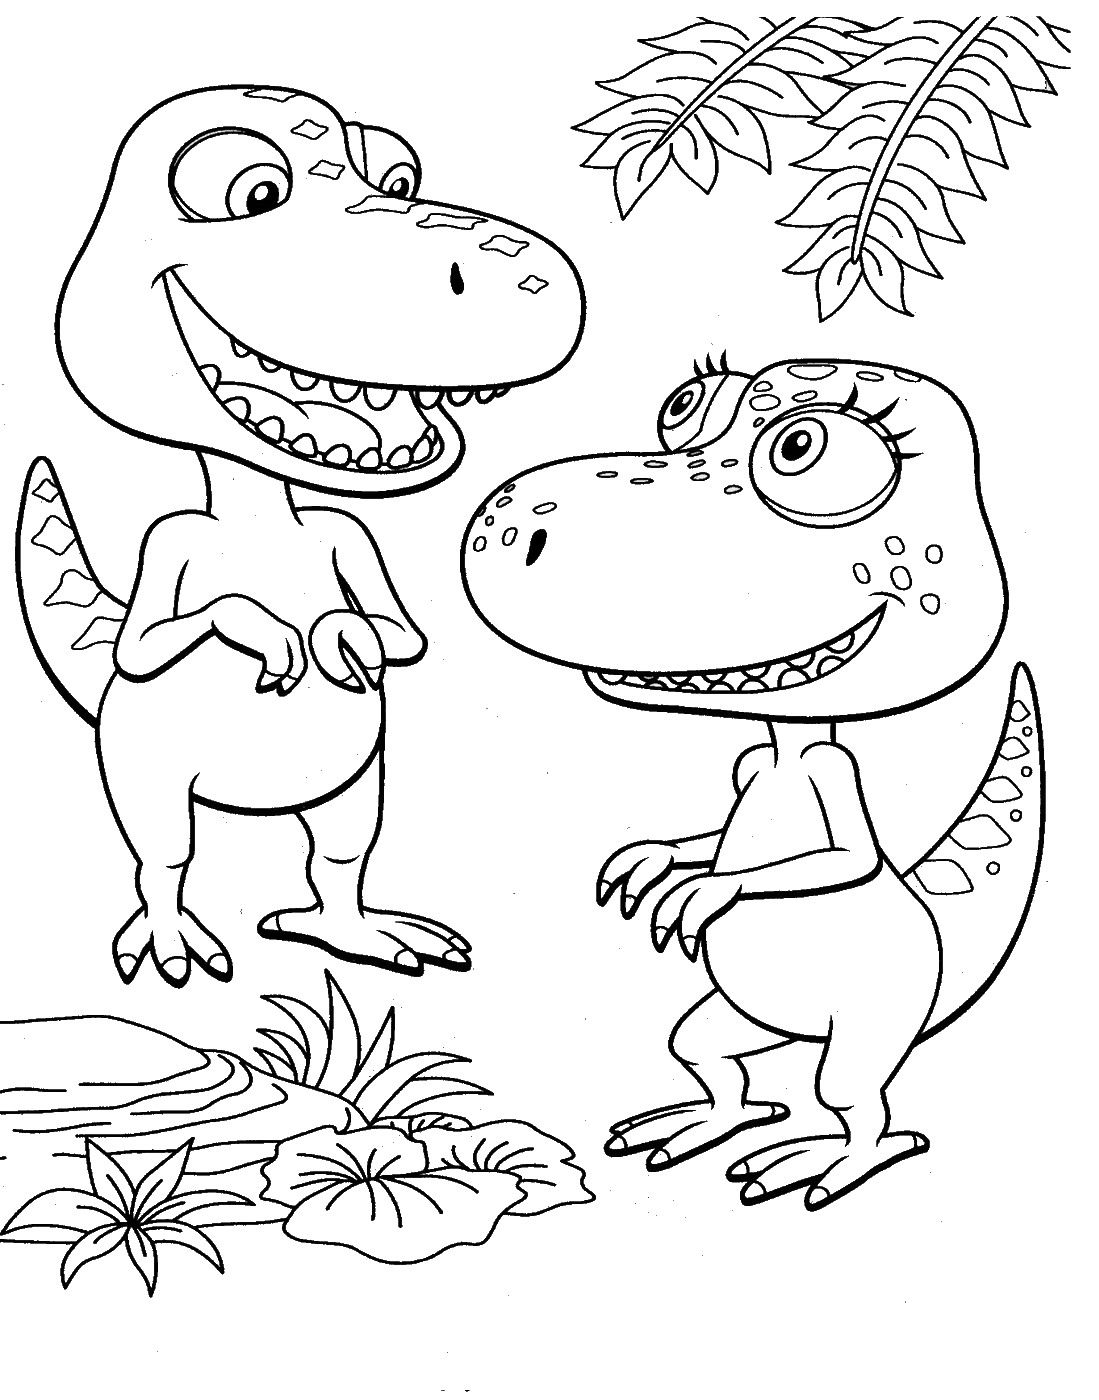 Dinosaurs May Have Walked The Earth A Billion Years Ago But They Remain An Interesting Topic Till Date Check Free Printable Dinosaur Train Coloring Pages